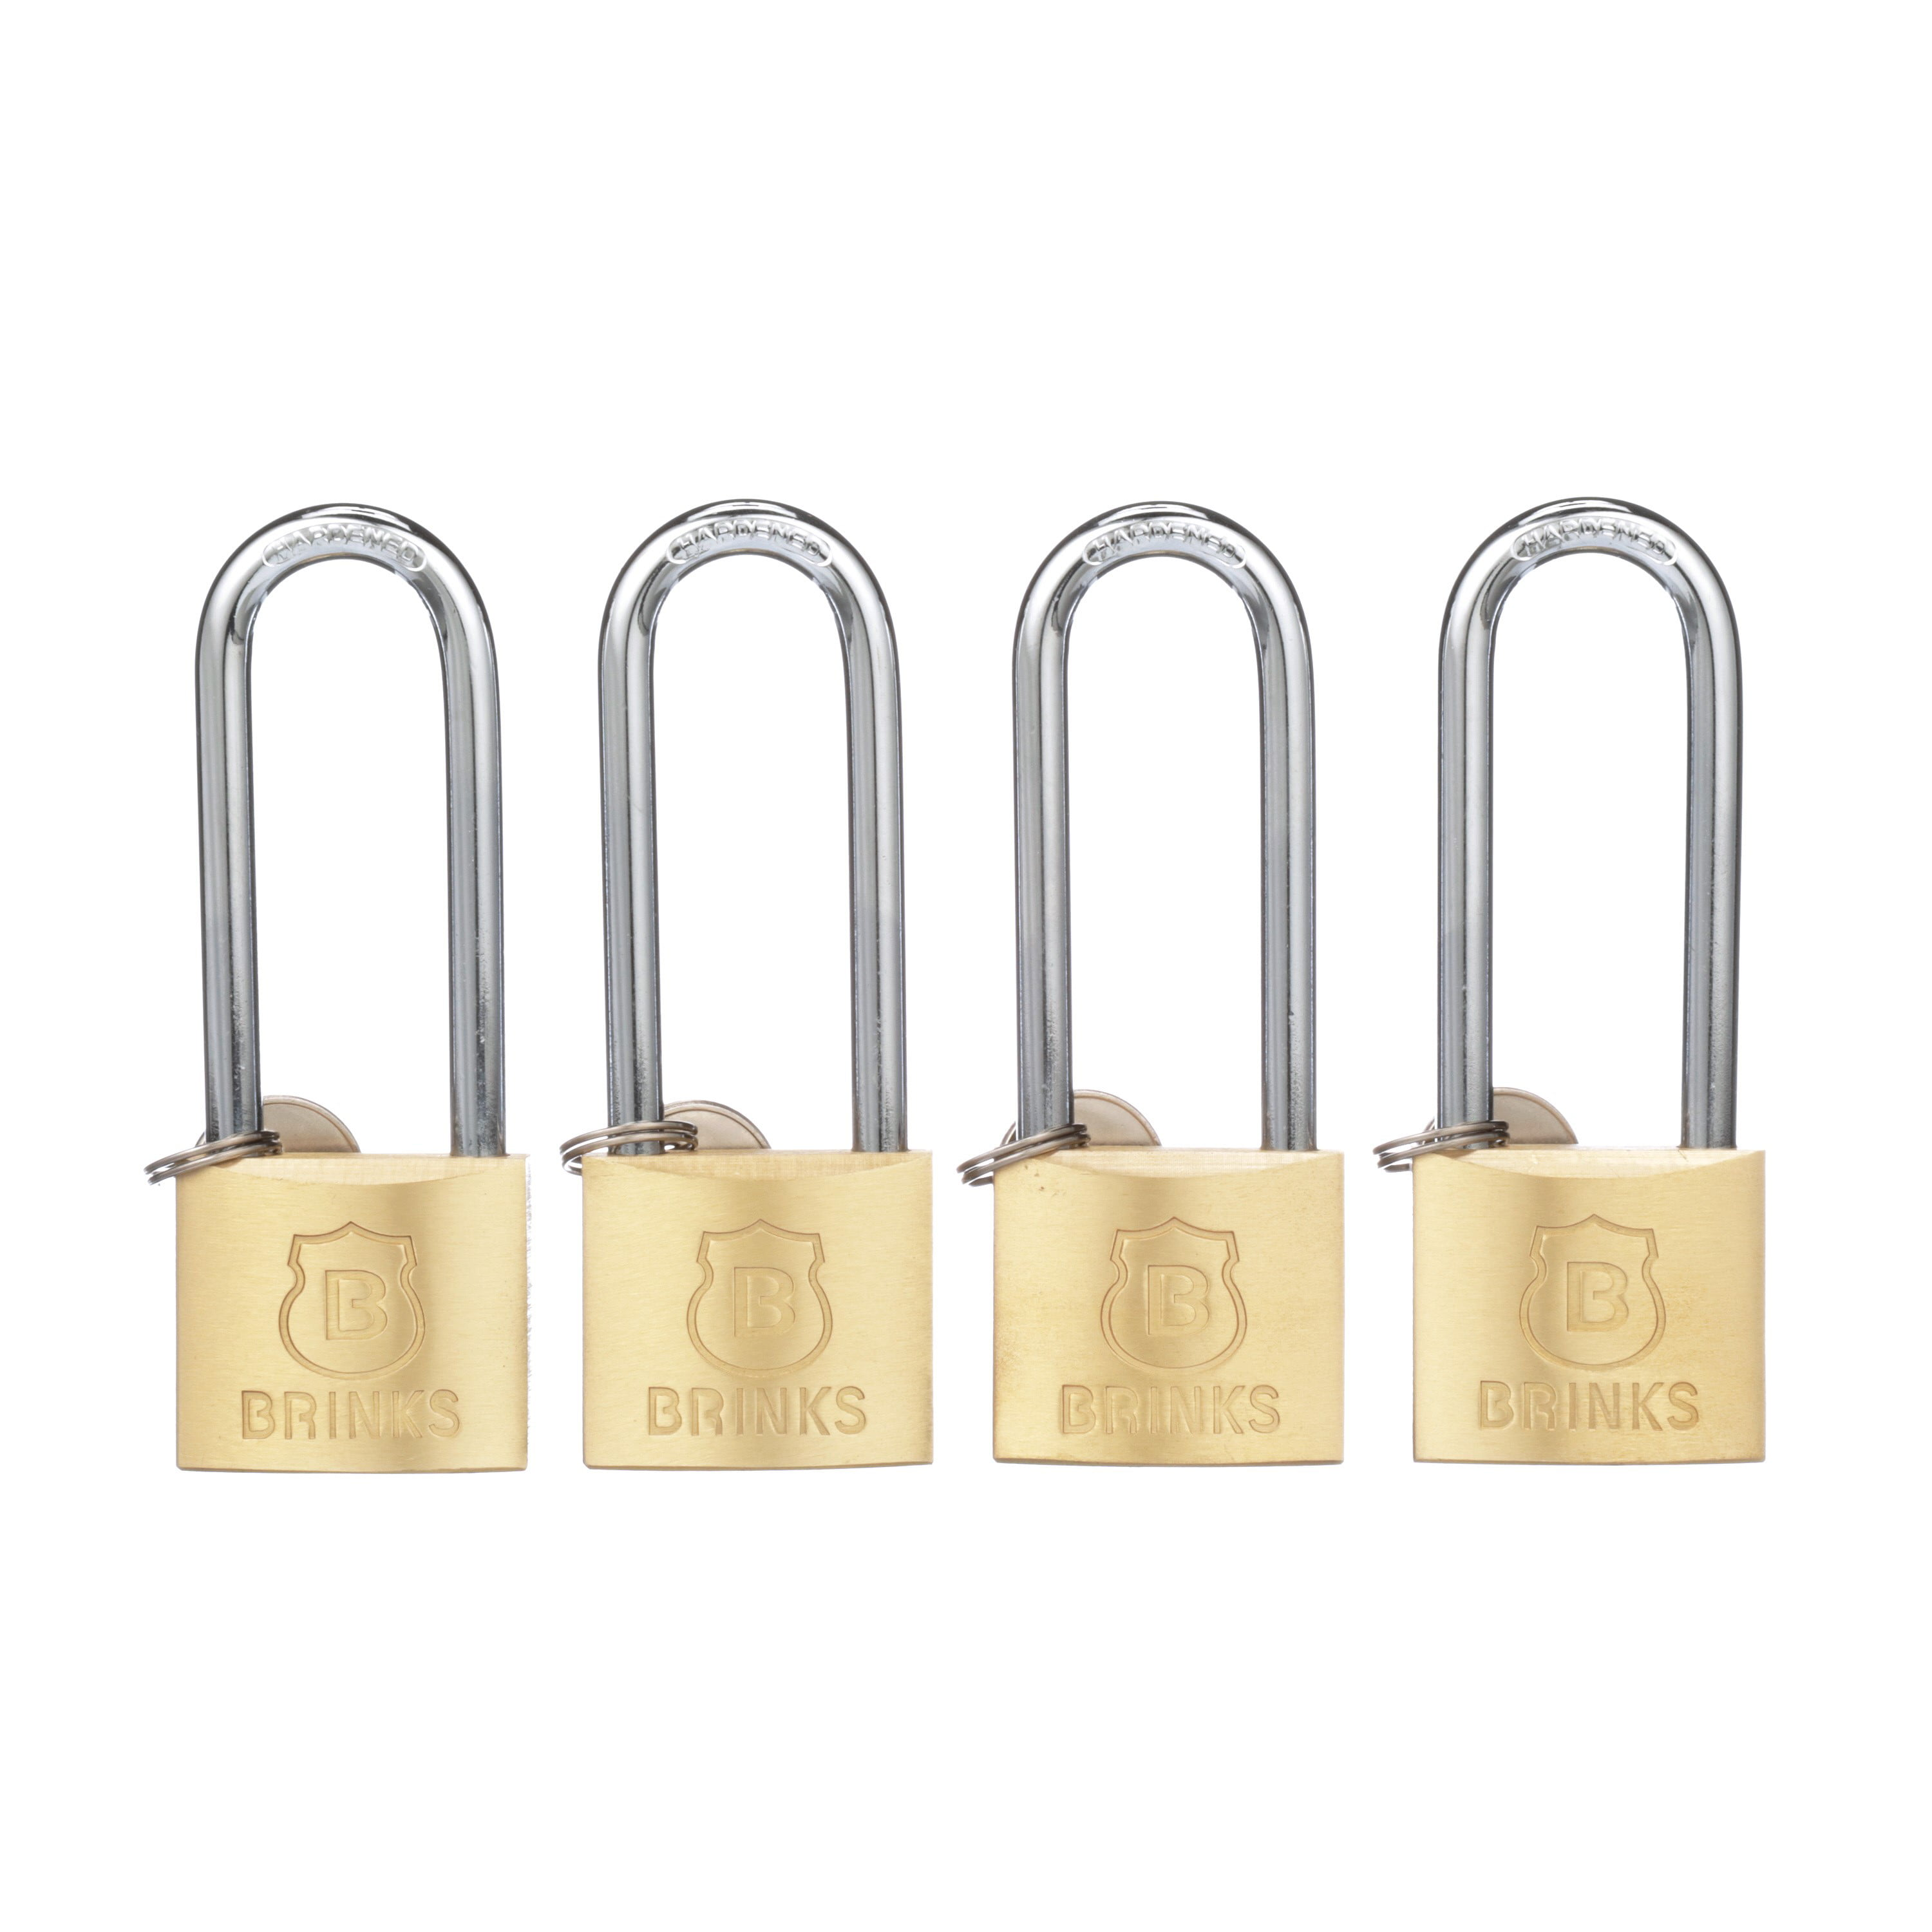 Brink's 40mm Long Shackle Solid Brass Padlock by Hampton Products Int'l Corp.